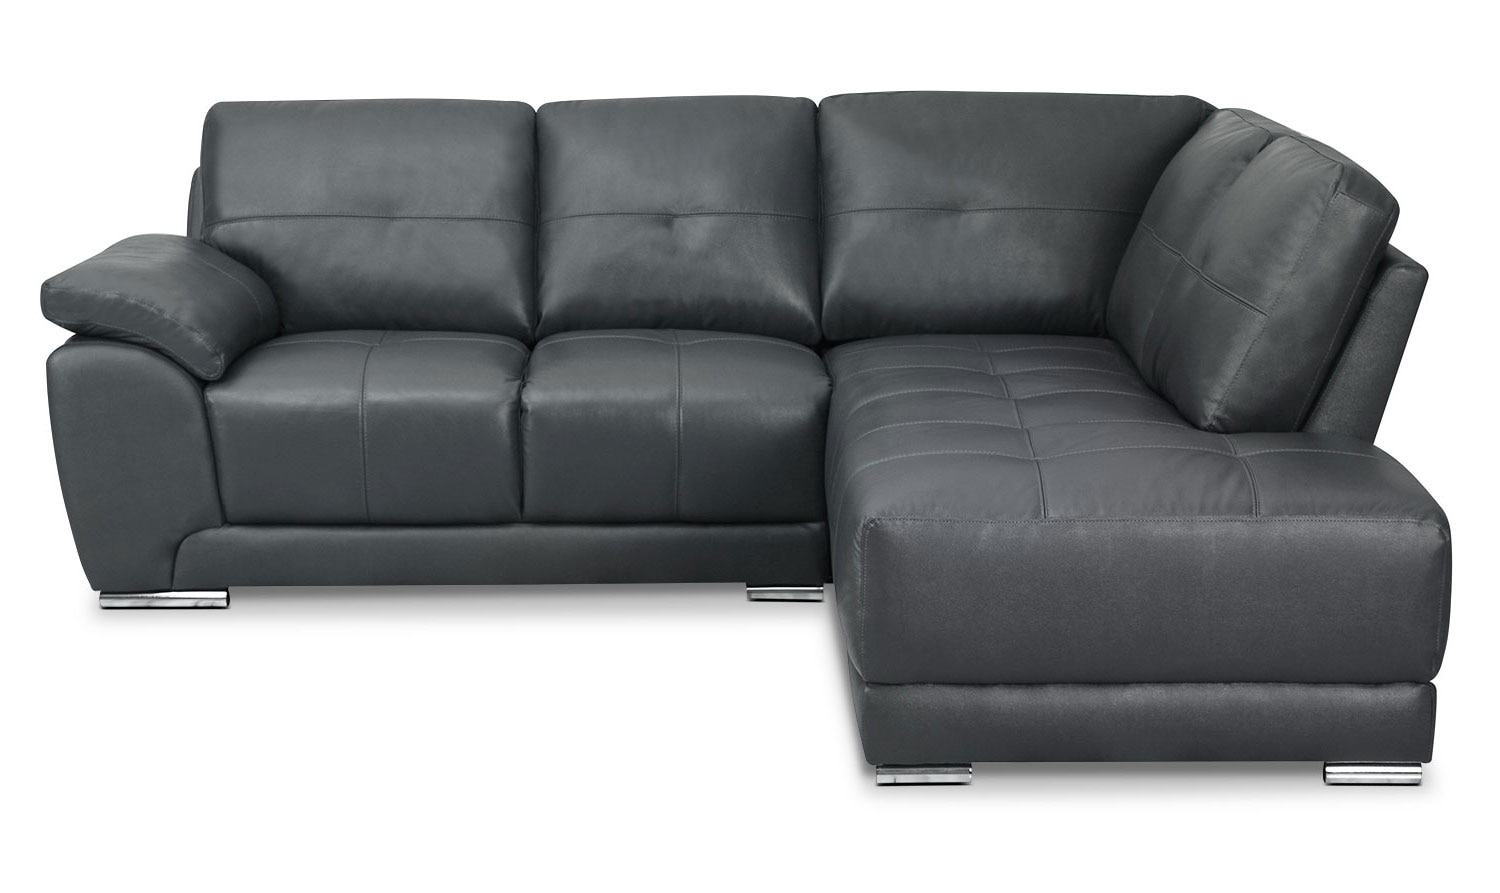 rylee 2 piece genuine leather right facing sectional grey the brick. Black Bedroom Furniture Sets. Home Design Ideas